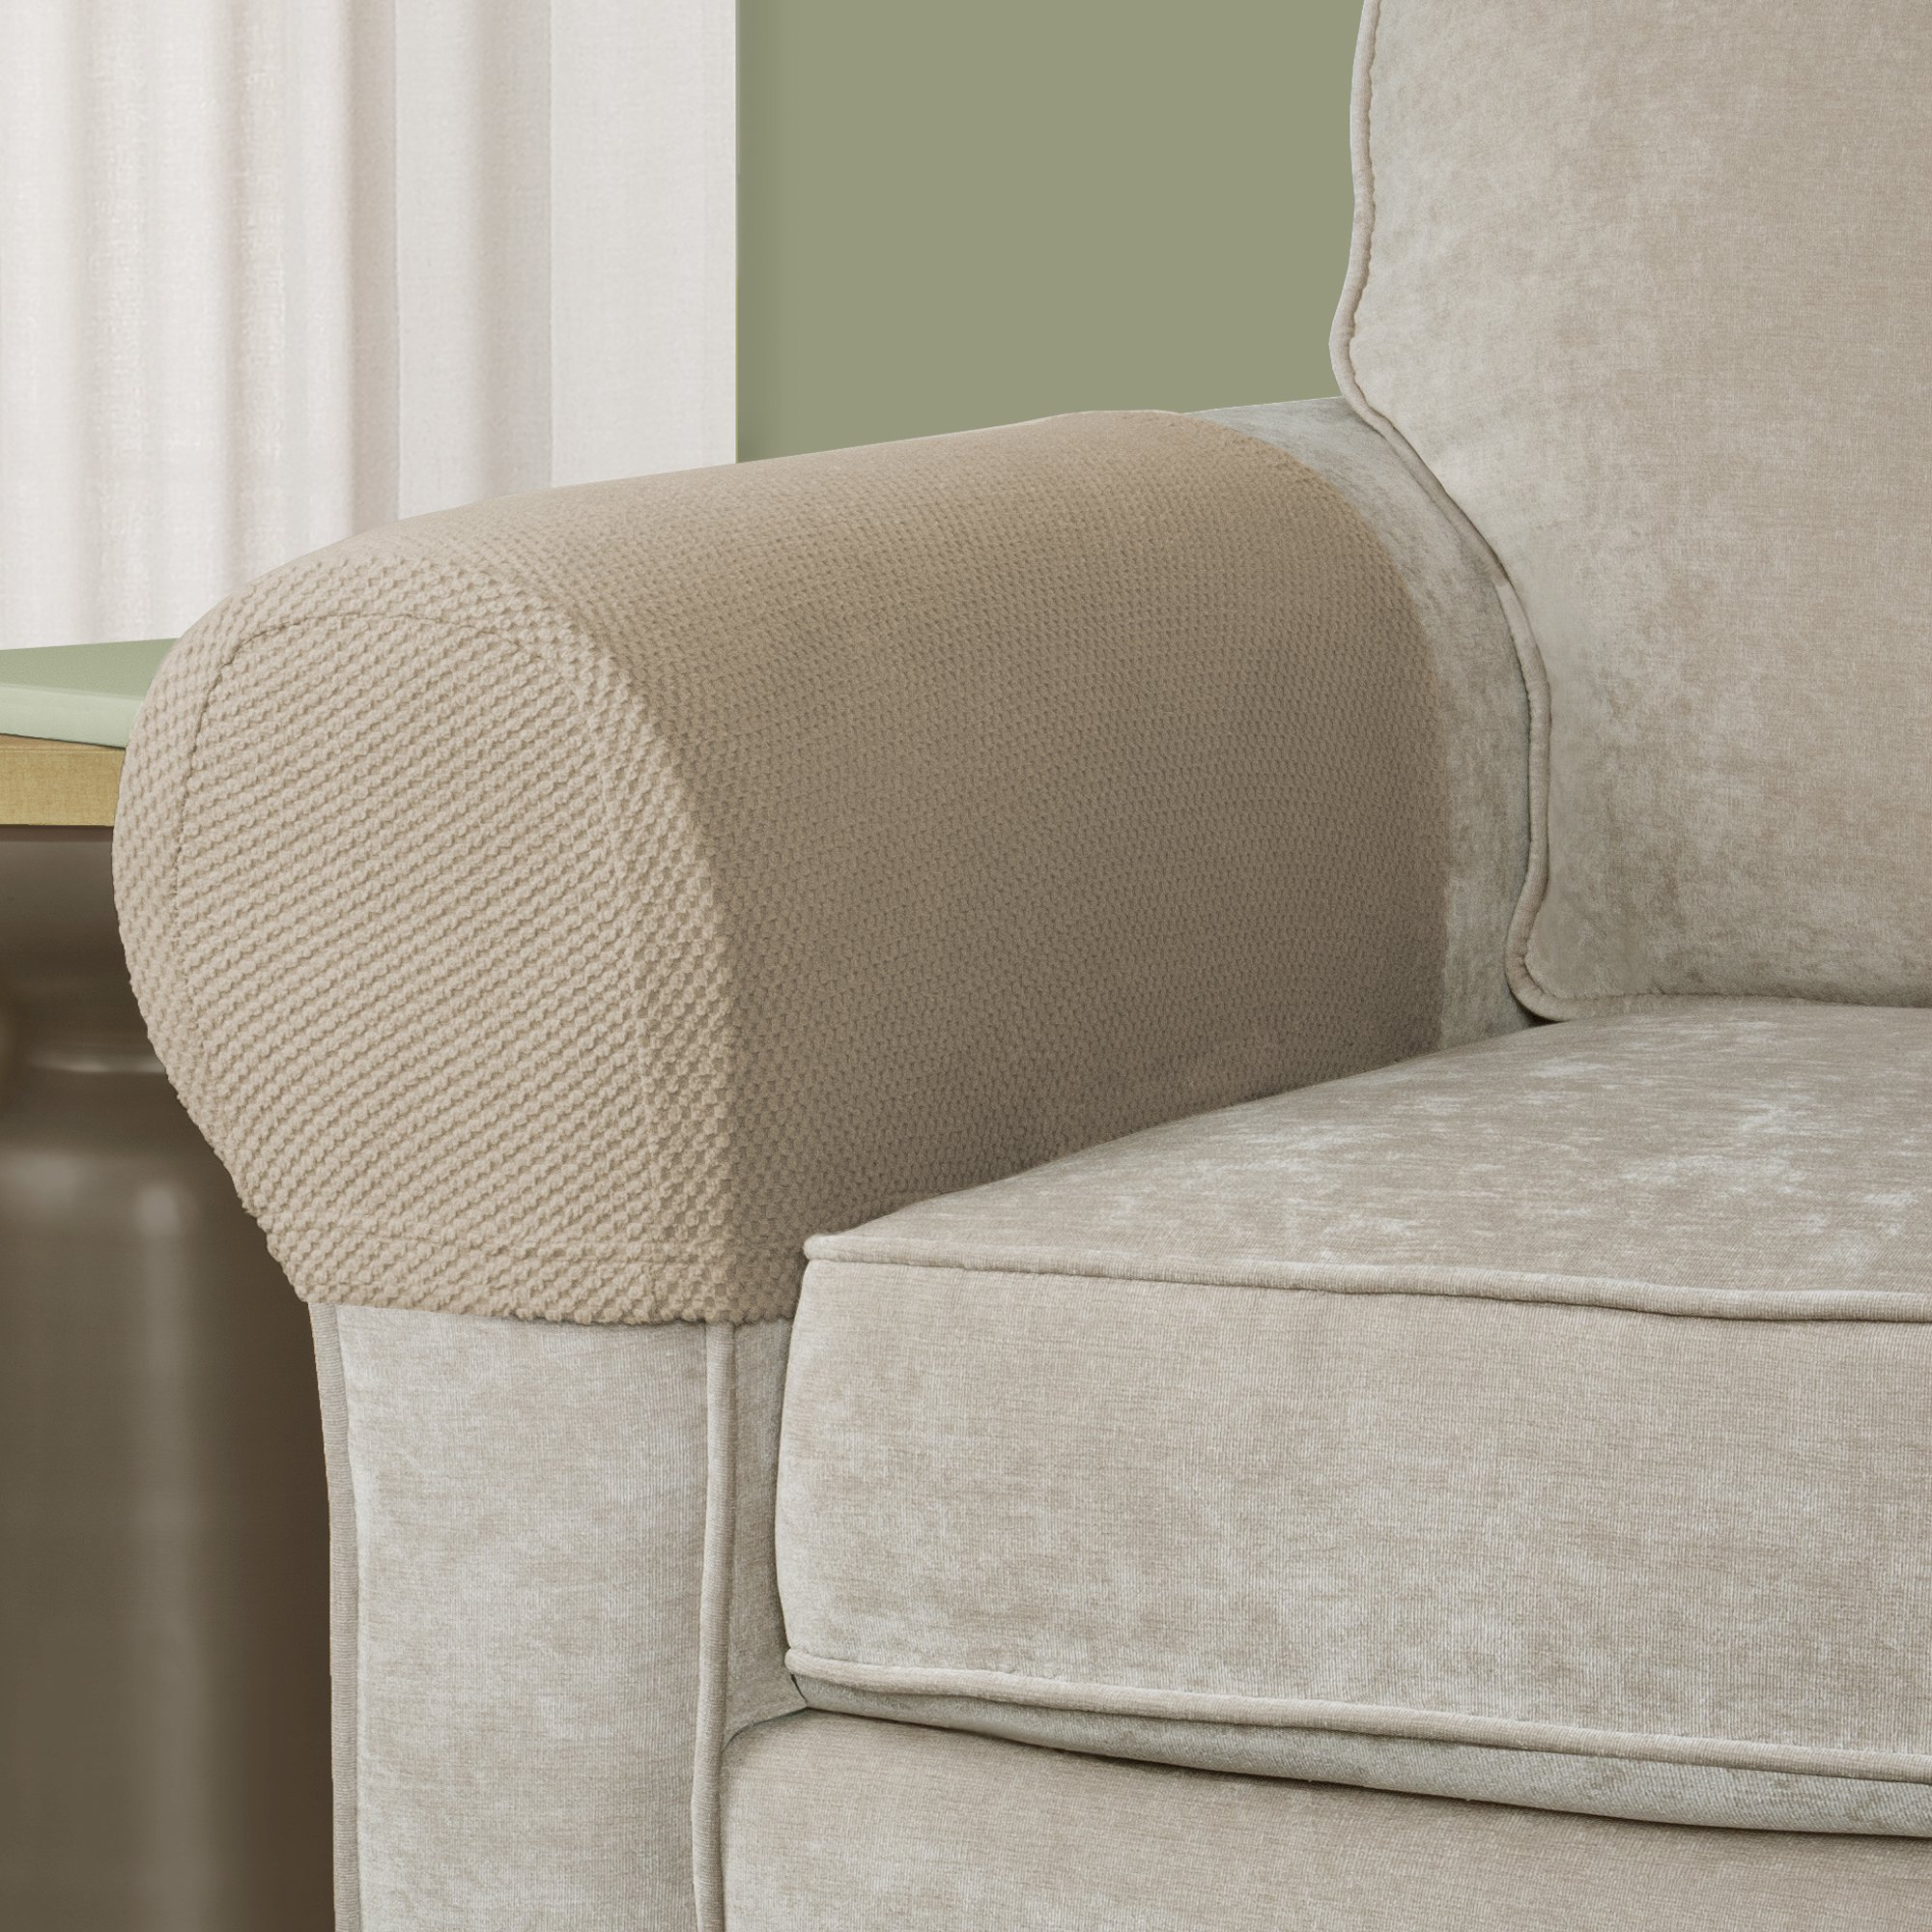 Genial Mainstays Stretch Pixel 2 Piece Armrest Furniture Cover Slipcover    Walmart.com